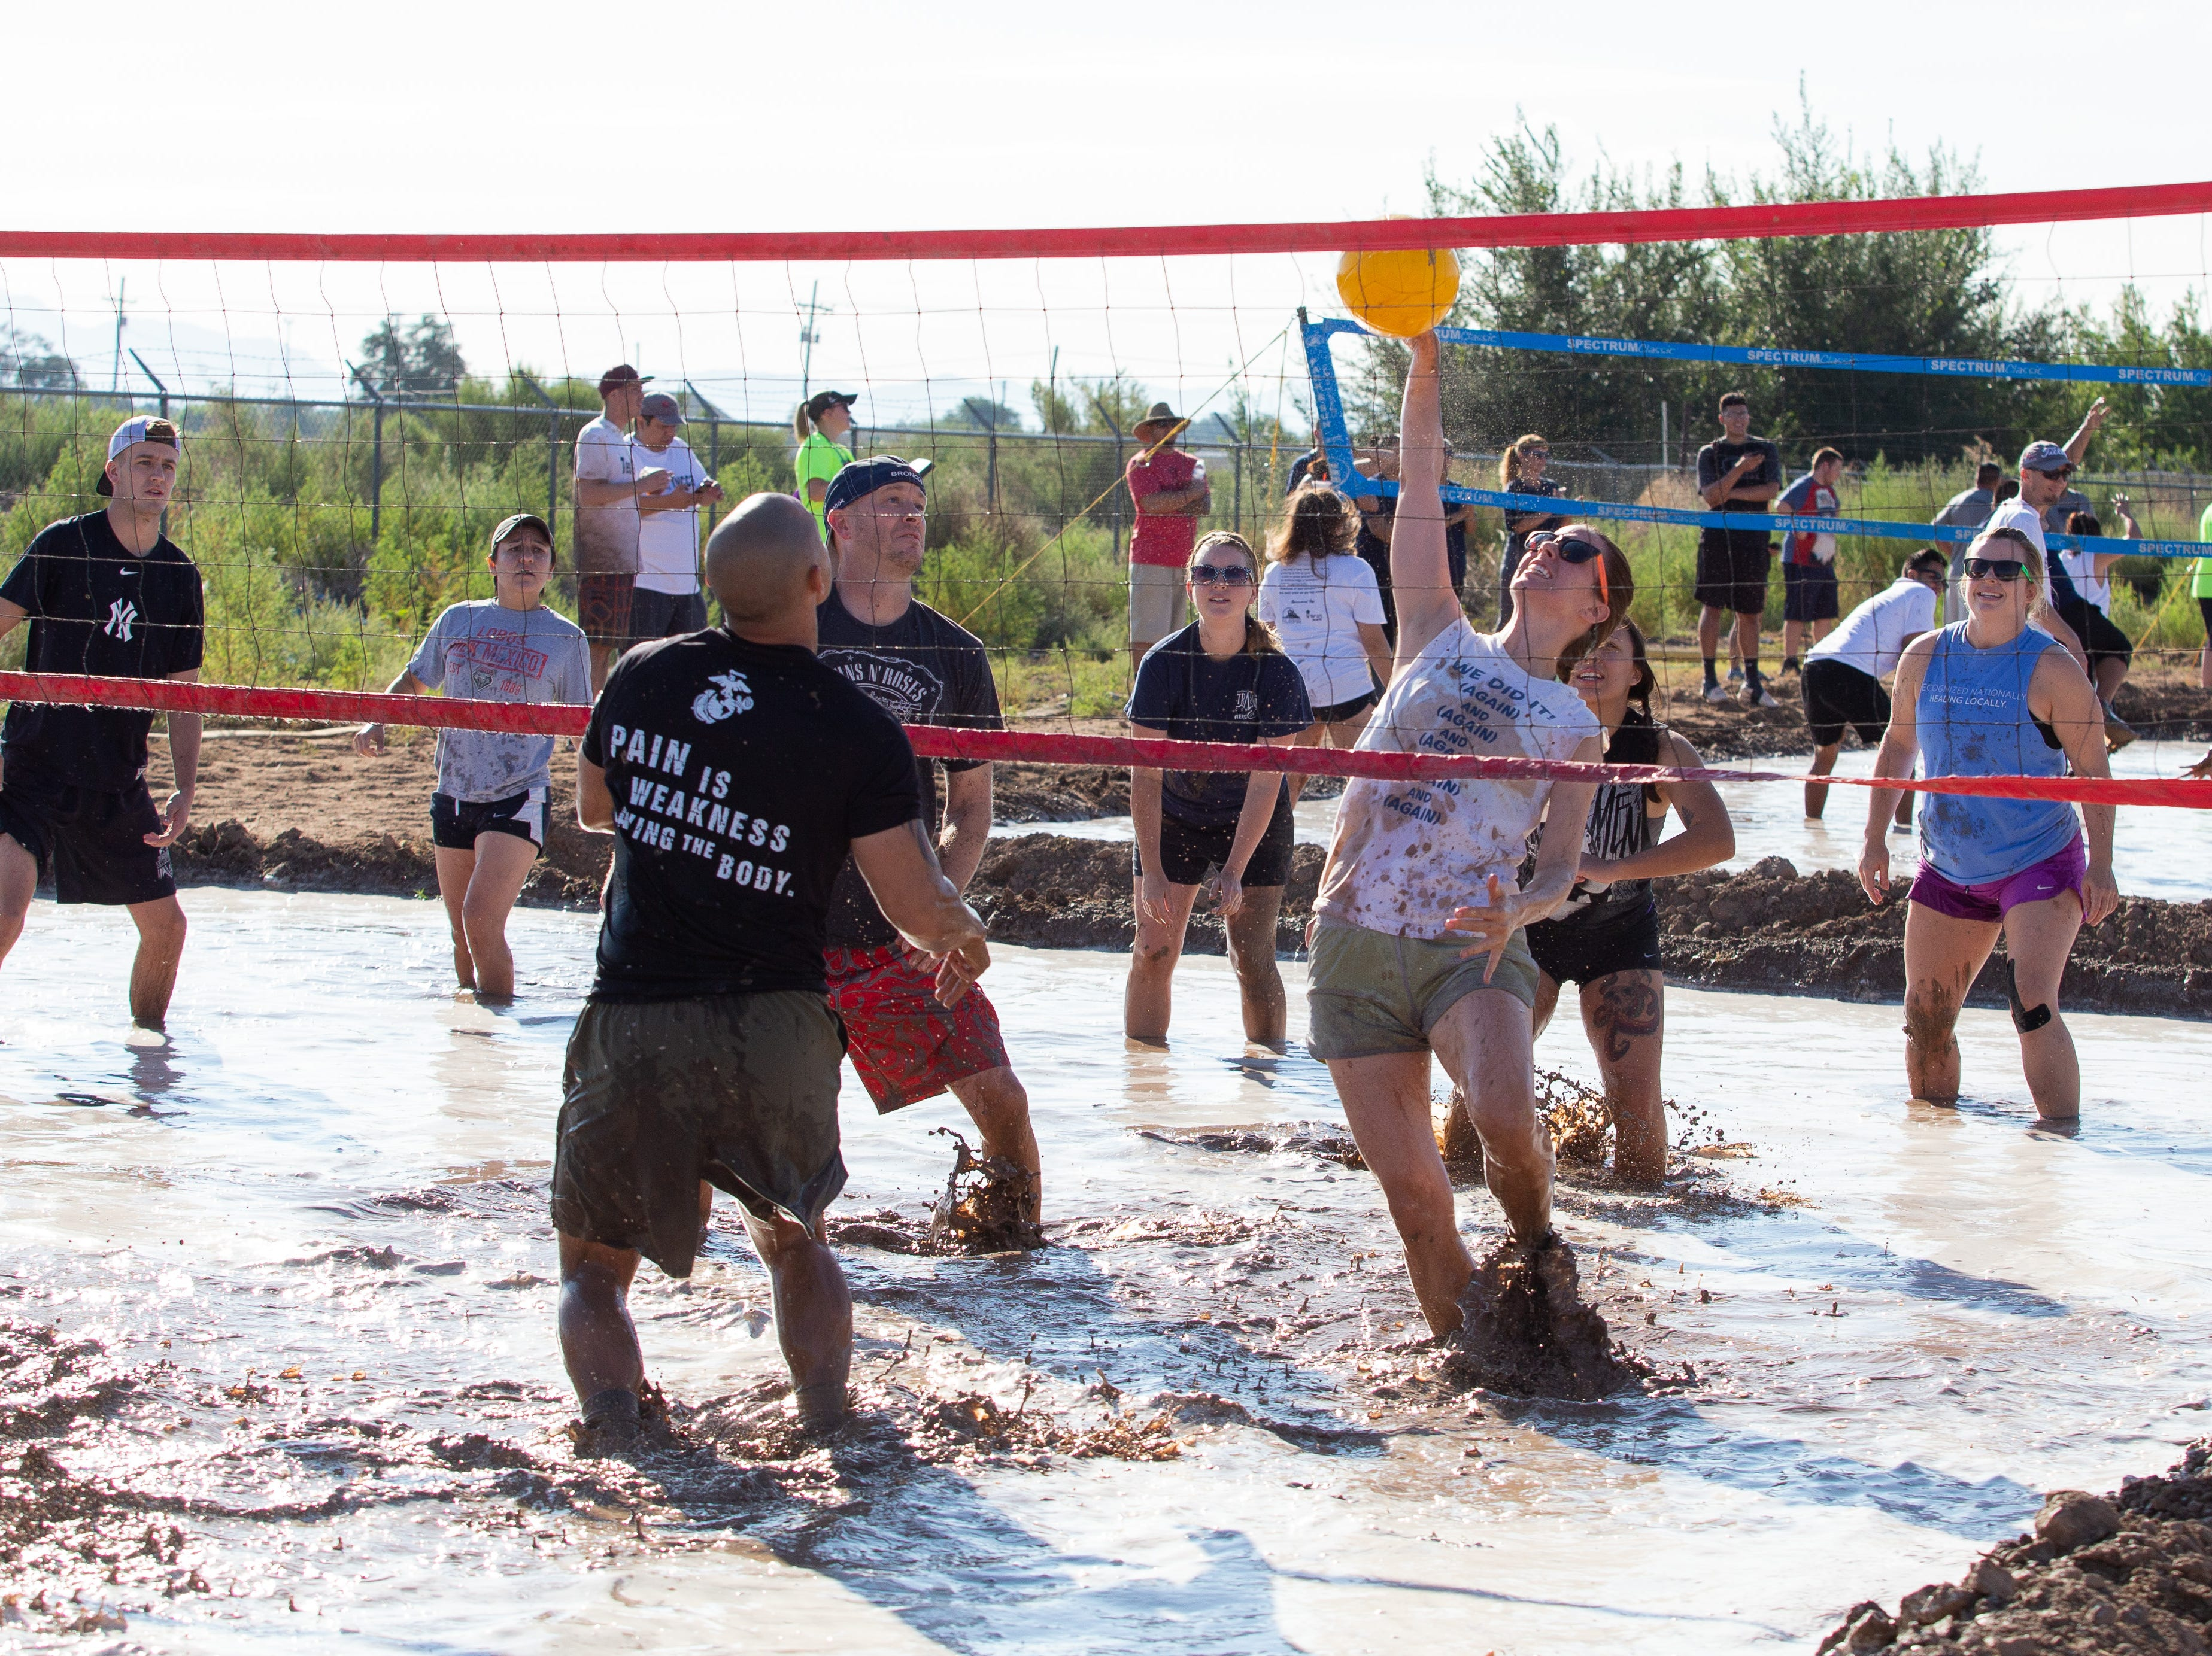 Jackie Geddy of Team Setsy Beasts tips one over the net during the 9th Annual Mudd Volleyball tournament on September 8, 2018.